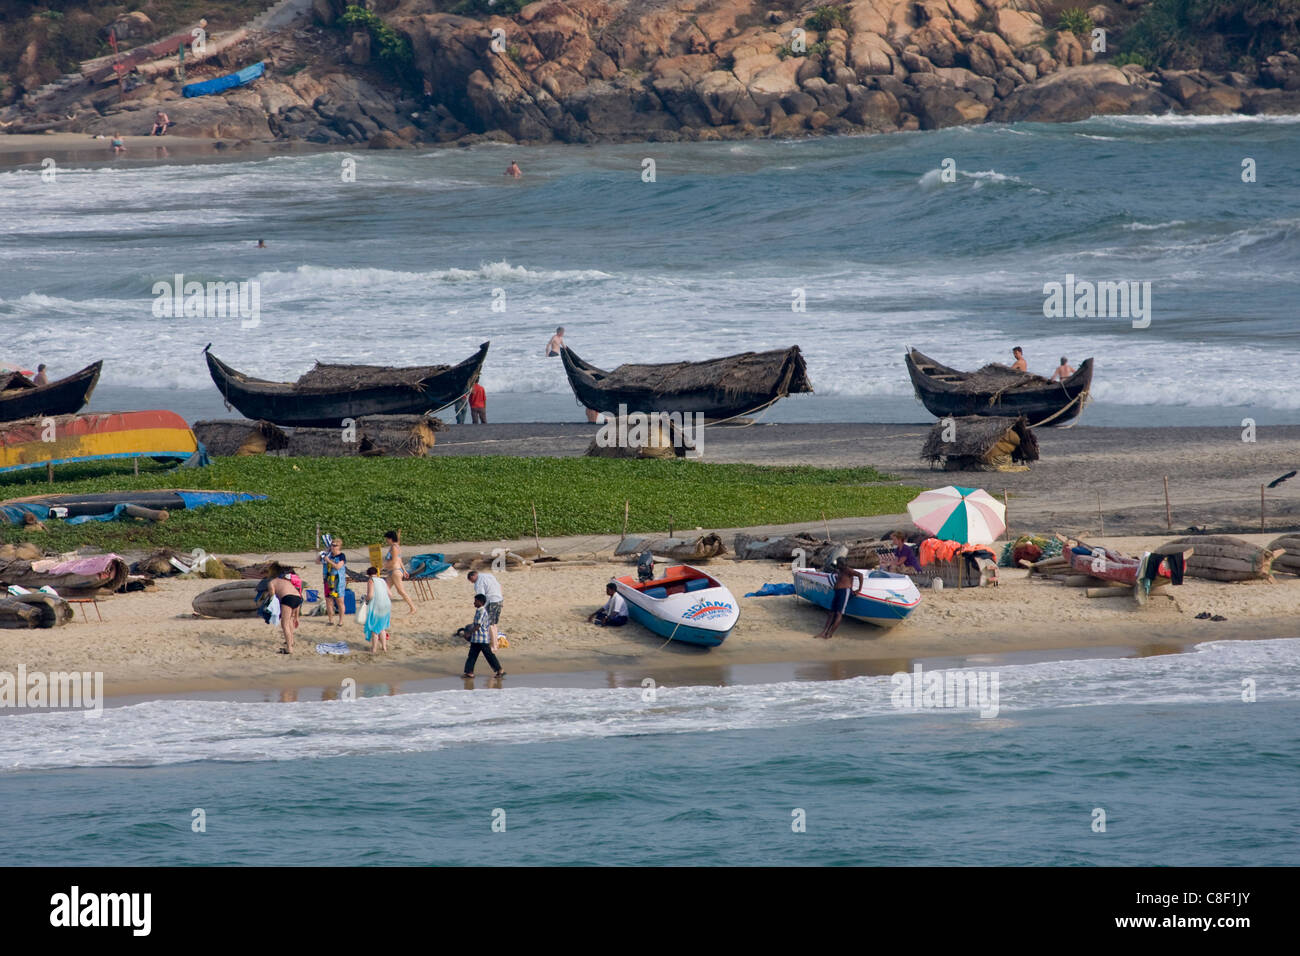 Vizhinjam beach, Trivandrum, Kerala, India - Stock Image